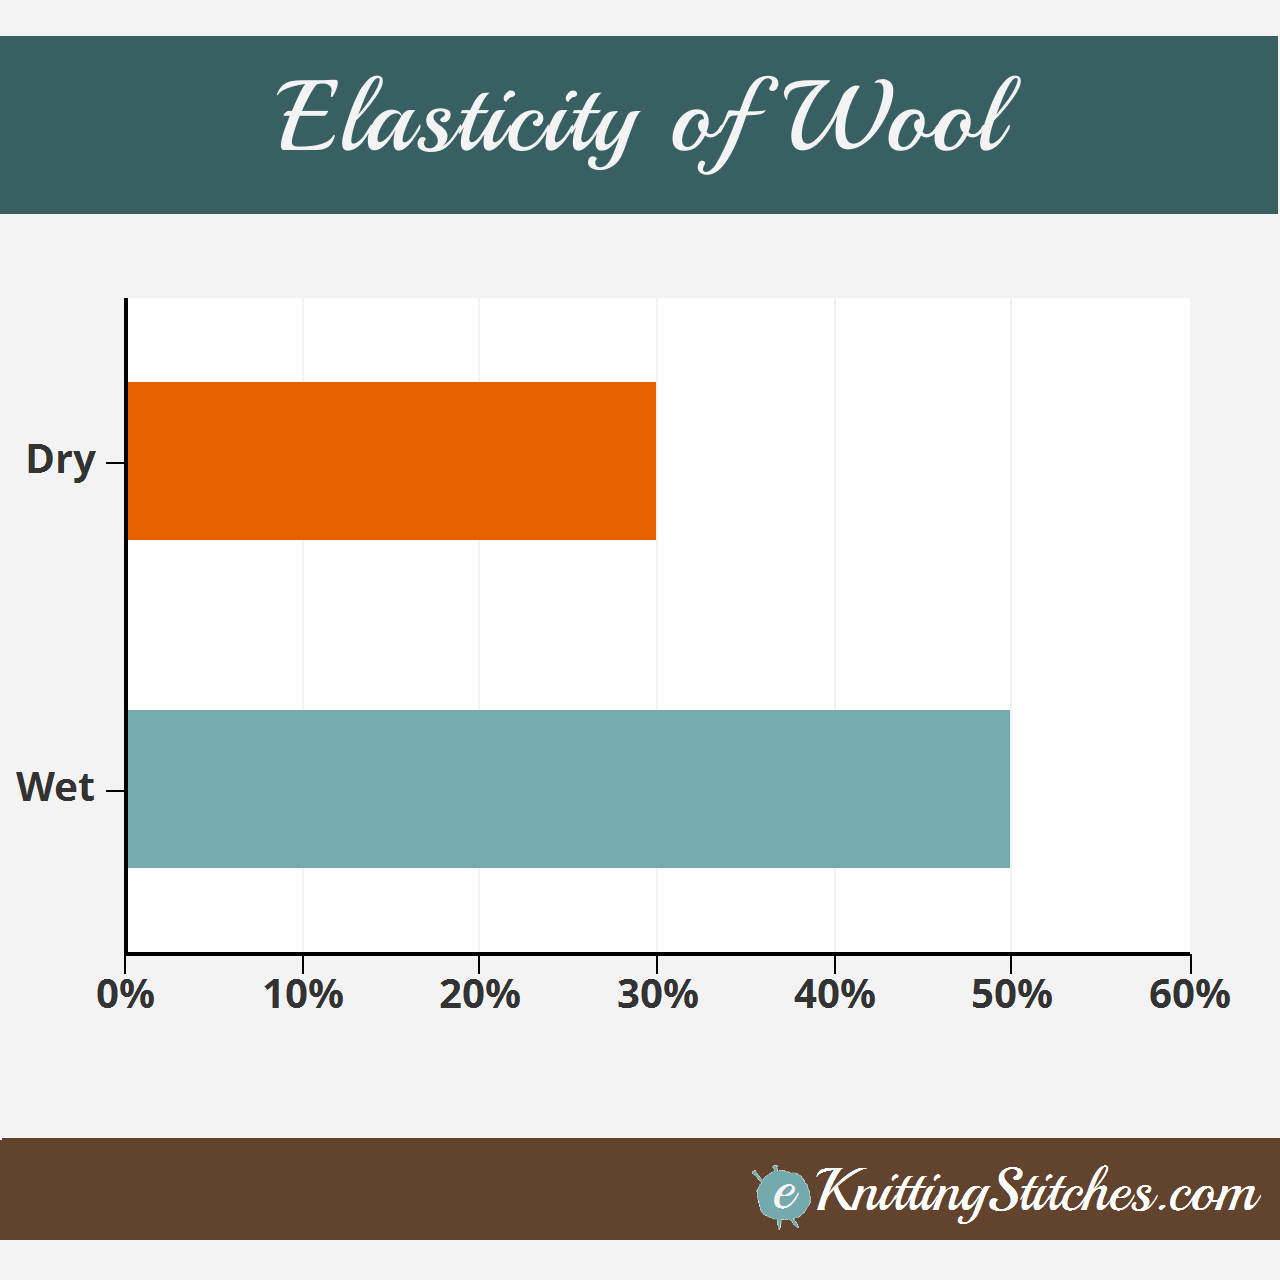 Bar Chart demonstrating the elastic properties of Wool when dry and wet